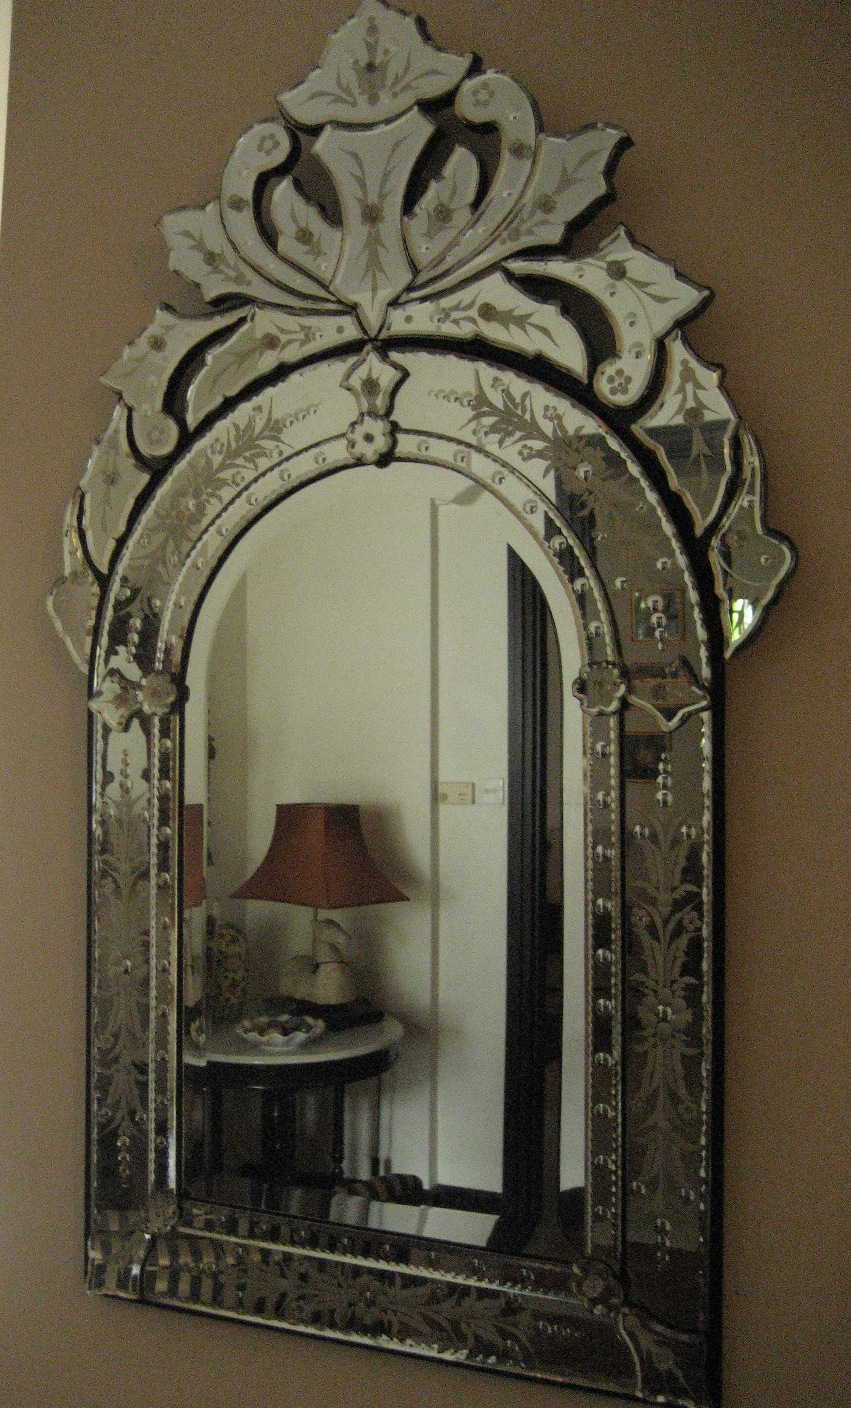 Large Mirrors In Bathroom Venetian Mirrors Home Decor Furnishings Sale In Kuala